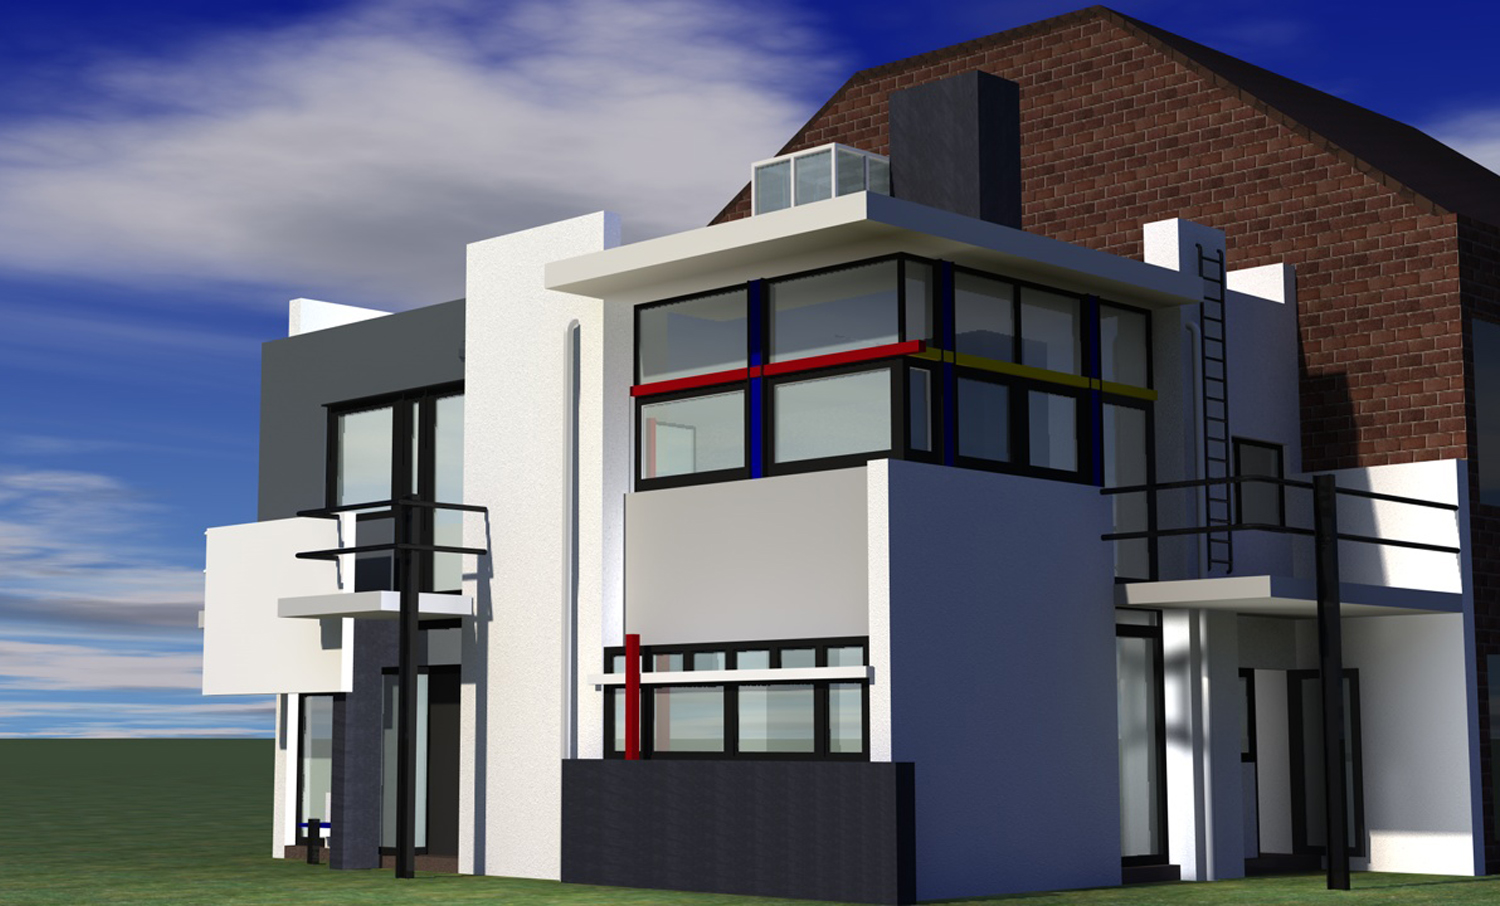 Exterior View 1 Day.jpg